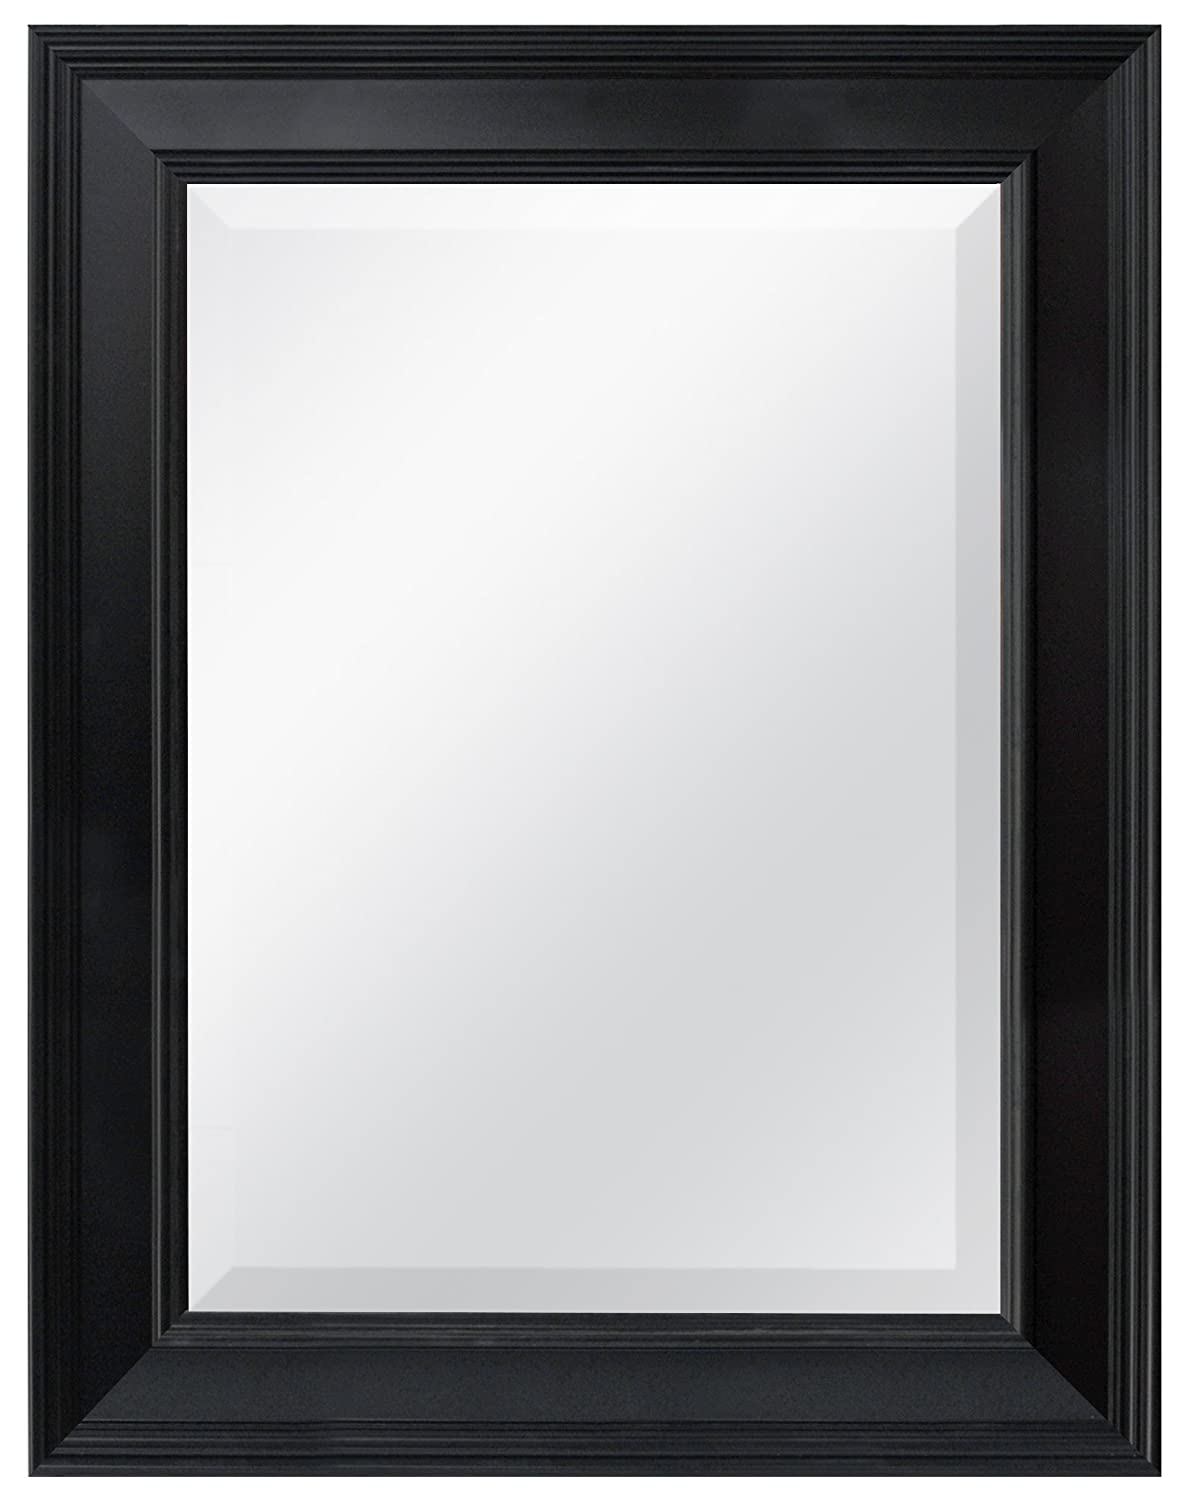 MCS 15.5x21.5 Inch Wall Mirror, 21.5x27.5 Inch Overall Size, Black (20449)